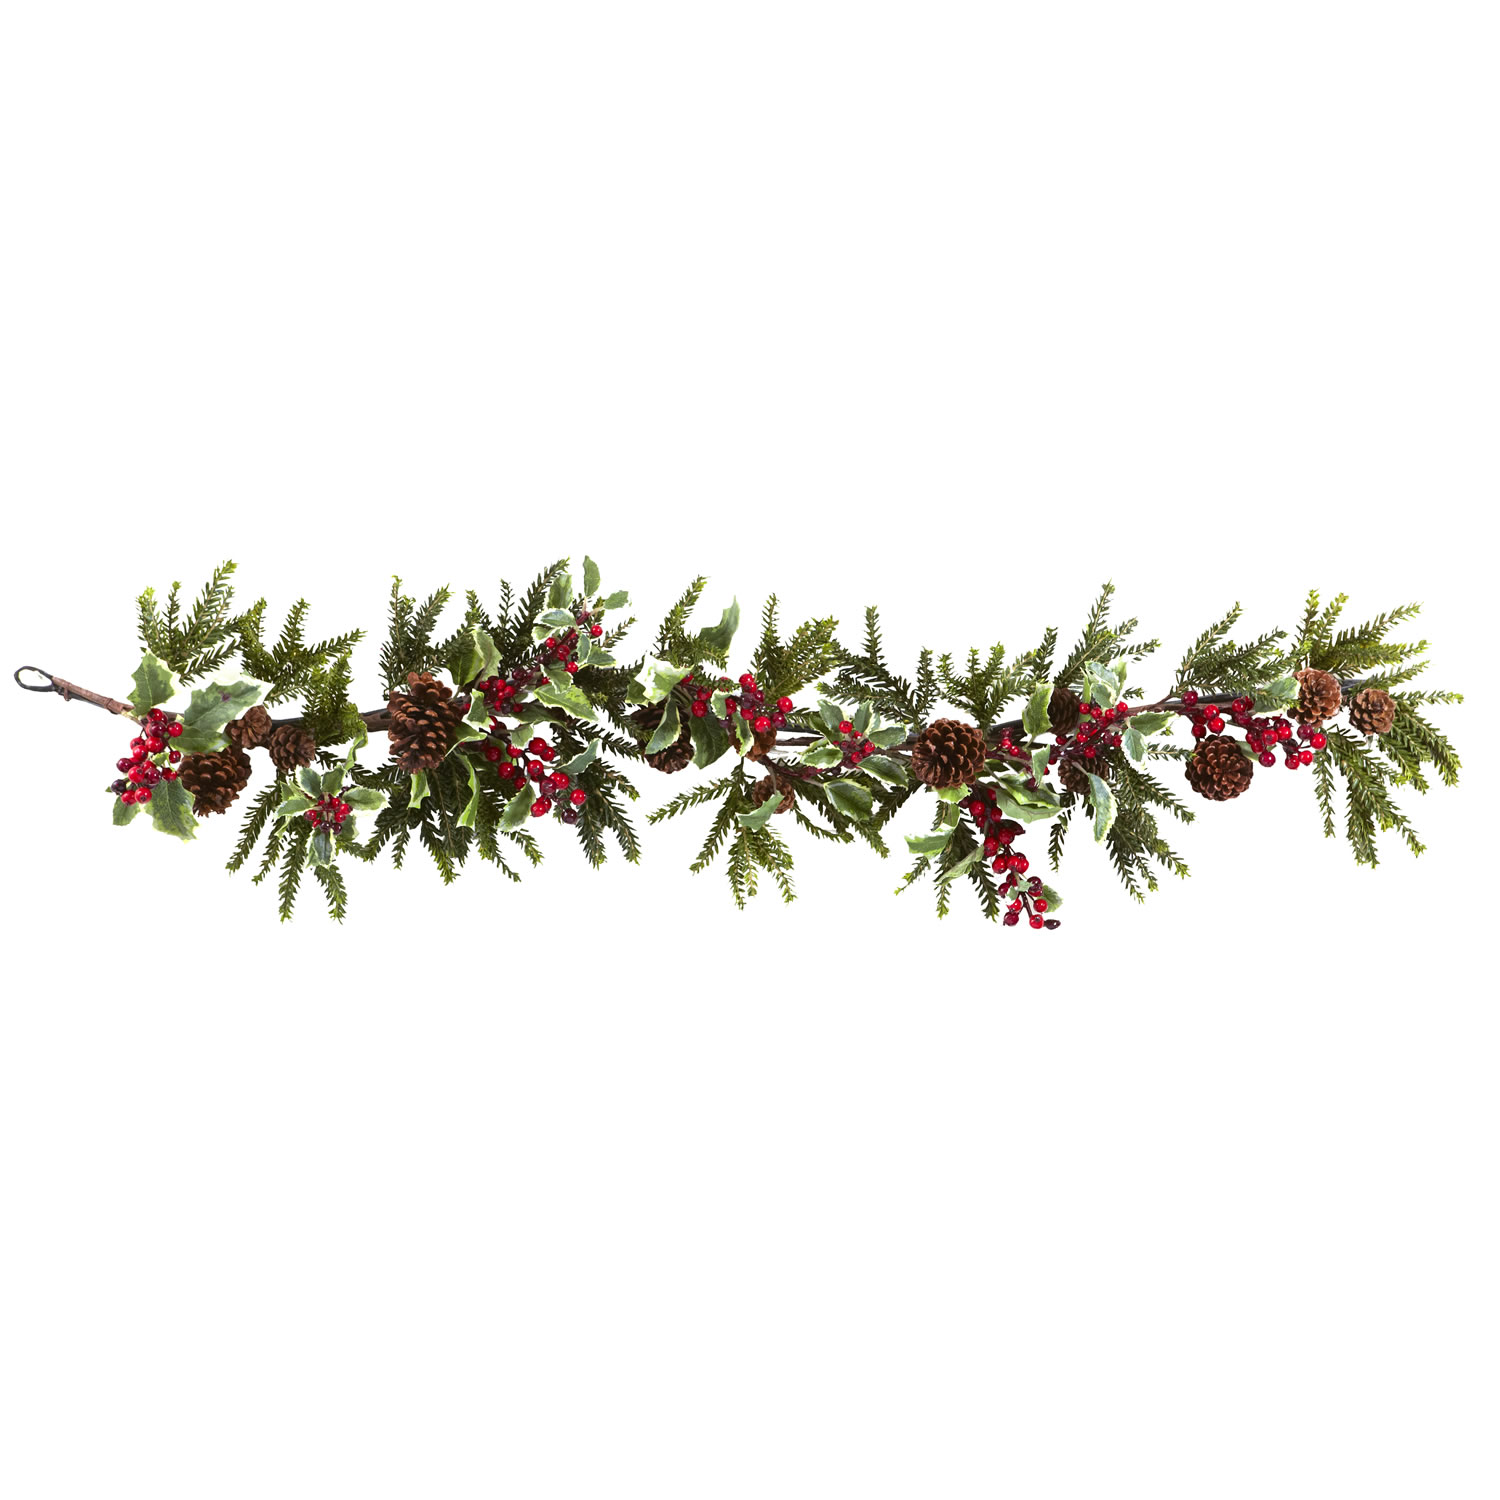 Pine Cone clipart coniferous forest Clipart Cliparts Garland Holly free